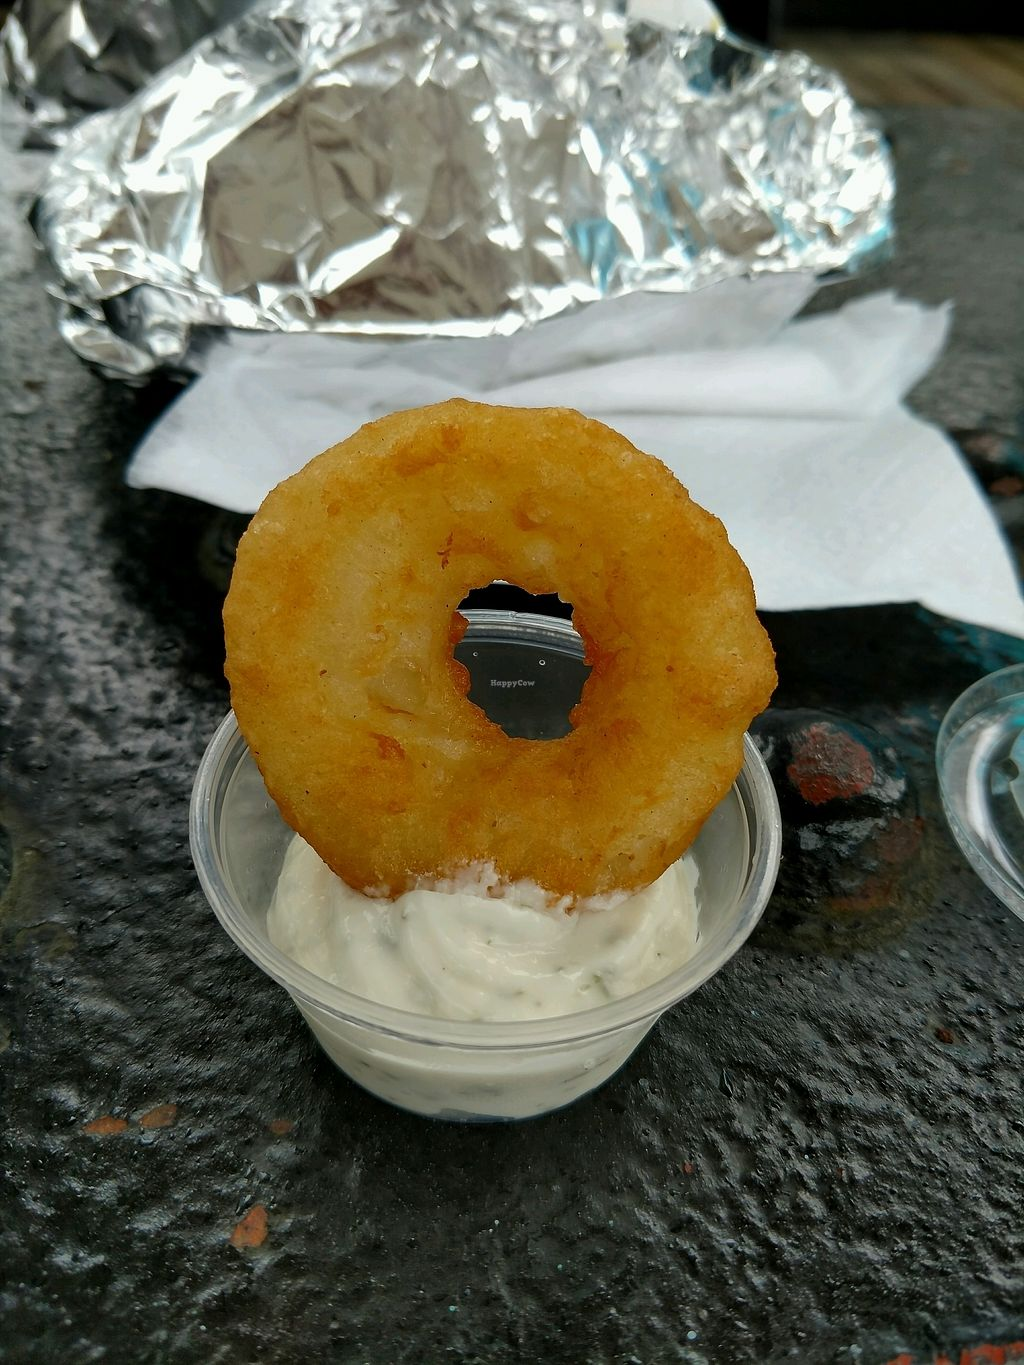 """Photo of CLOSED: Loving Hut Express - Food Cart  by <a href=""""/members/profile/MrsBAJ"""">MrsBAJ</a> <br/>onion rings of heaven <br/> September 12, 2017  - <a href='/contact/abuse/image/28607/303836'>Report</a>"""